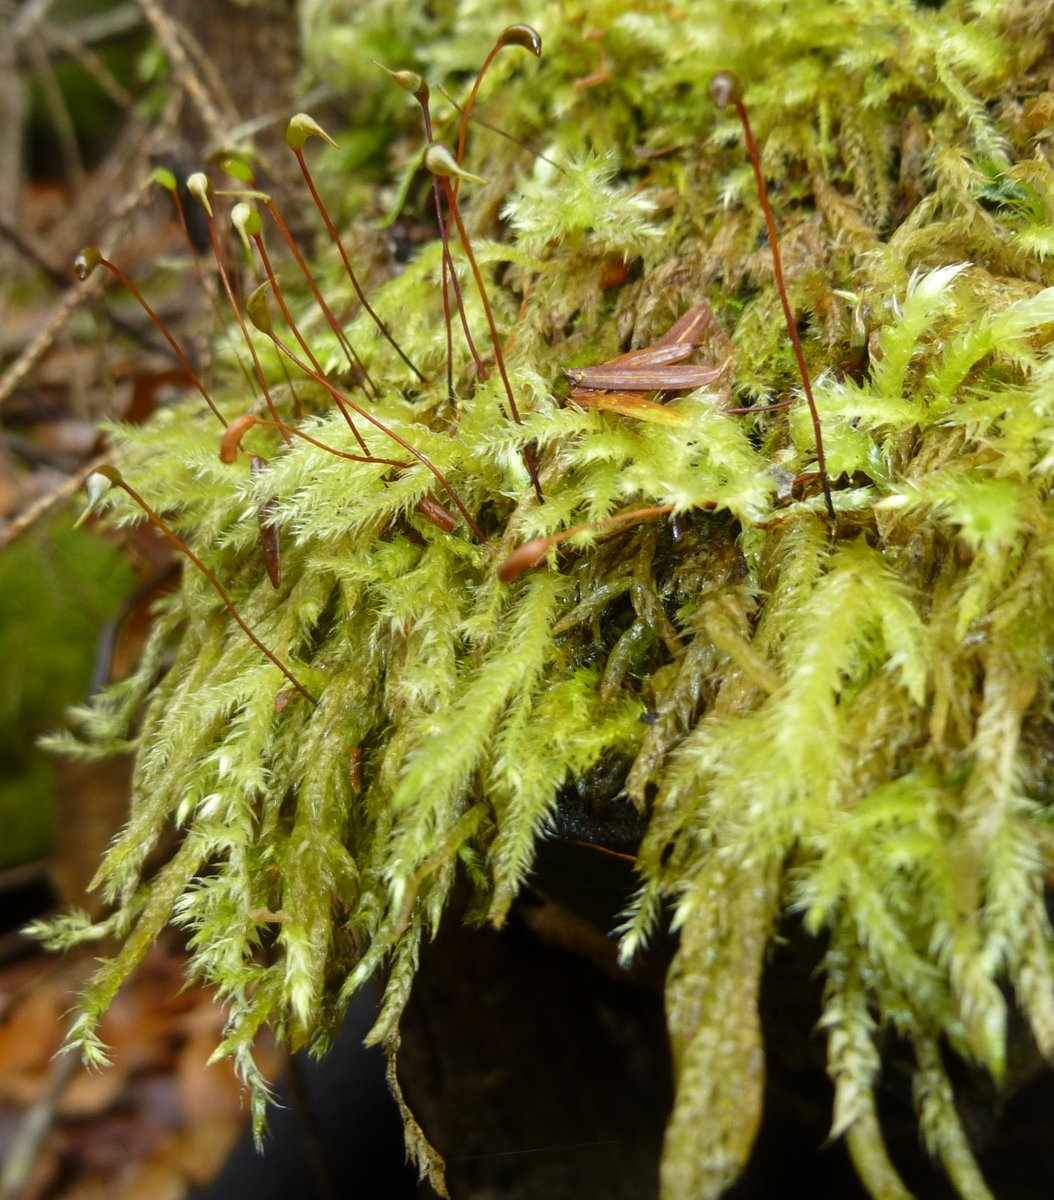 5. Yellow Feather Moss aka Homalothecium lutescens